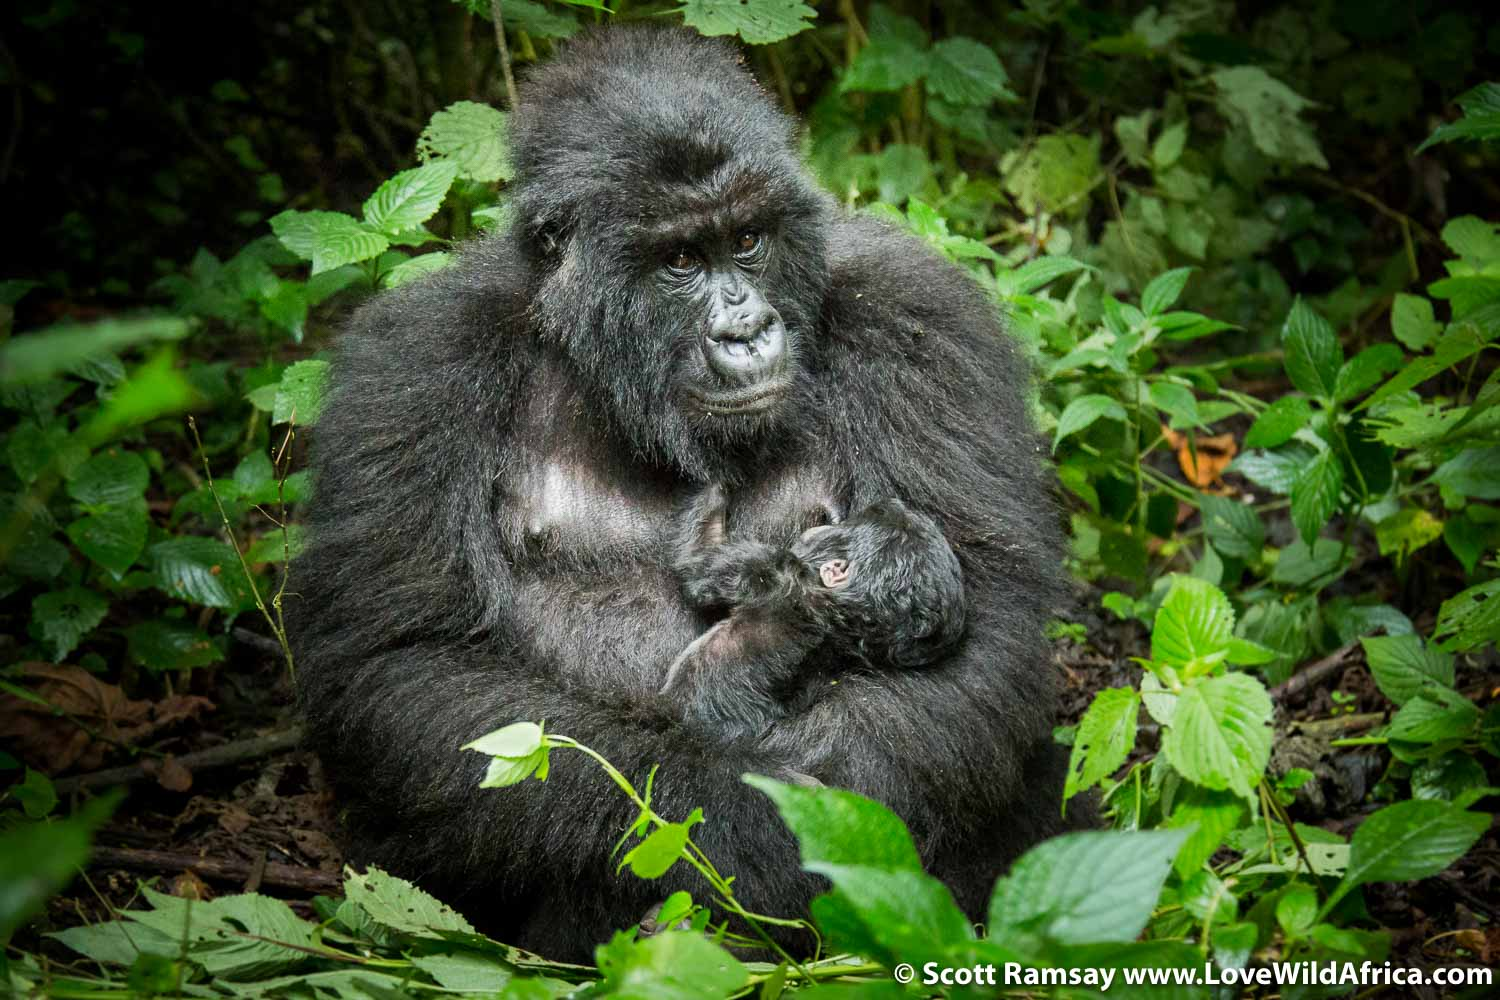 Mother and two-week old baby, part of the Humba family of mountain gorillas on the slopes of Mount Mikeno.